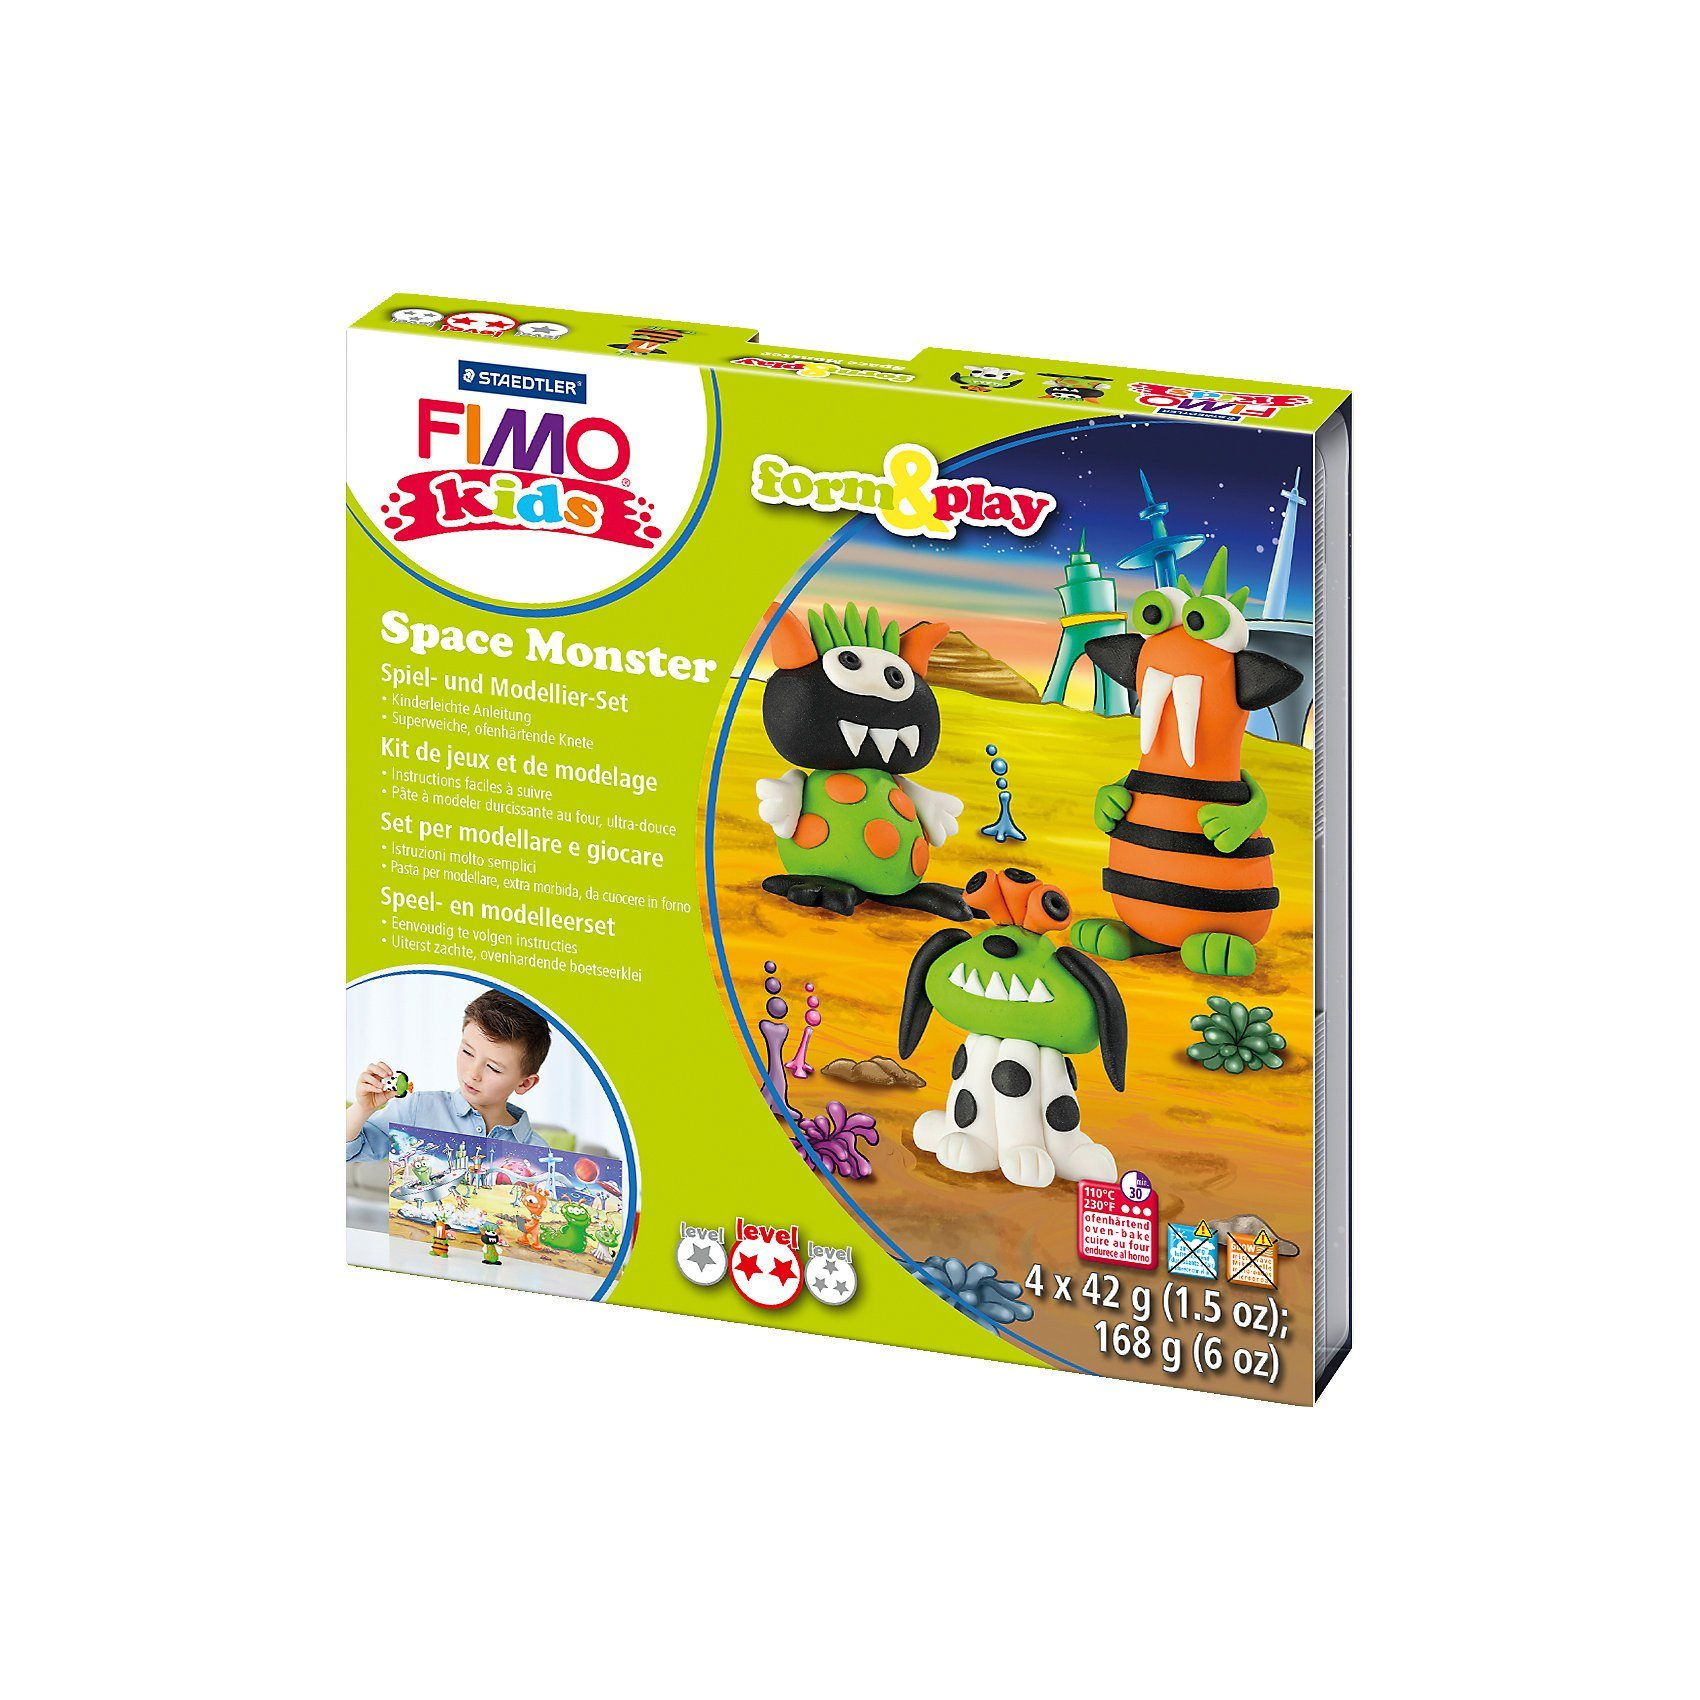 FIMO kids Form & Play Weltraum-Monster